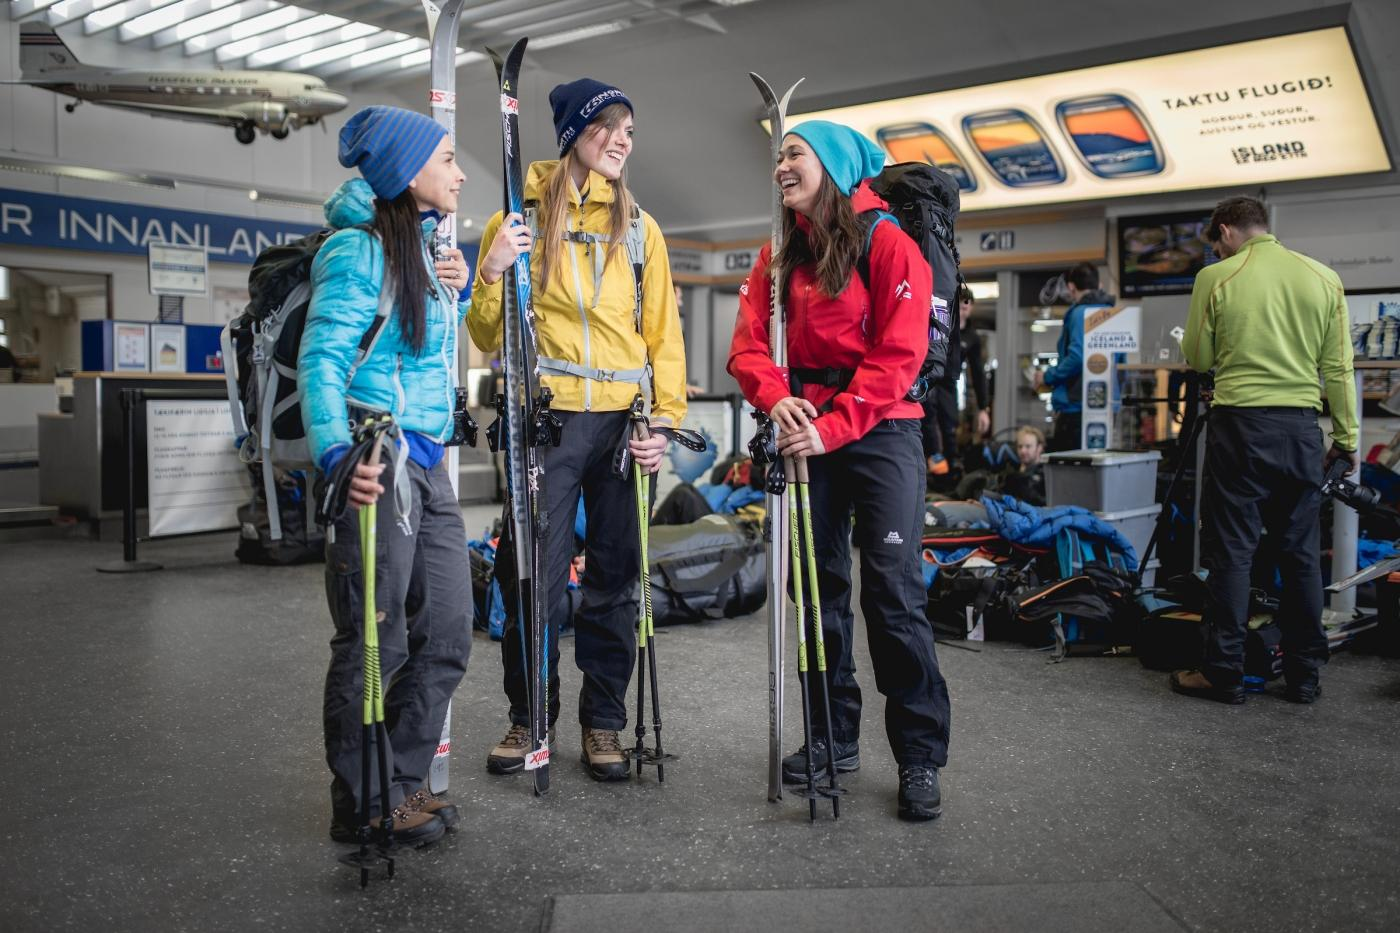 Skiers getting ready to go ski touring in East Greenland. Photo by Mads Pihl. Visit Greenland